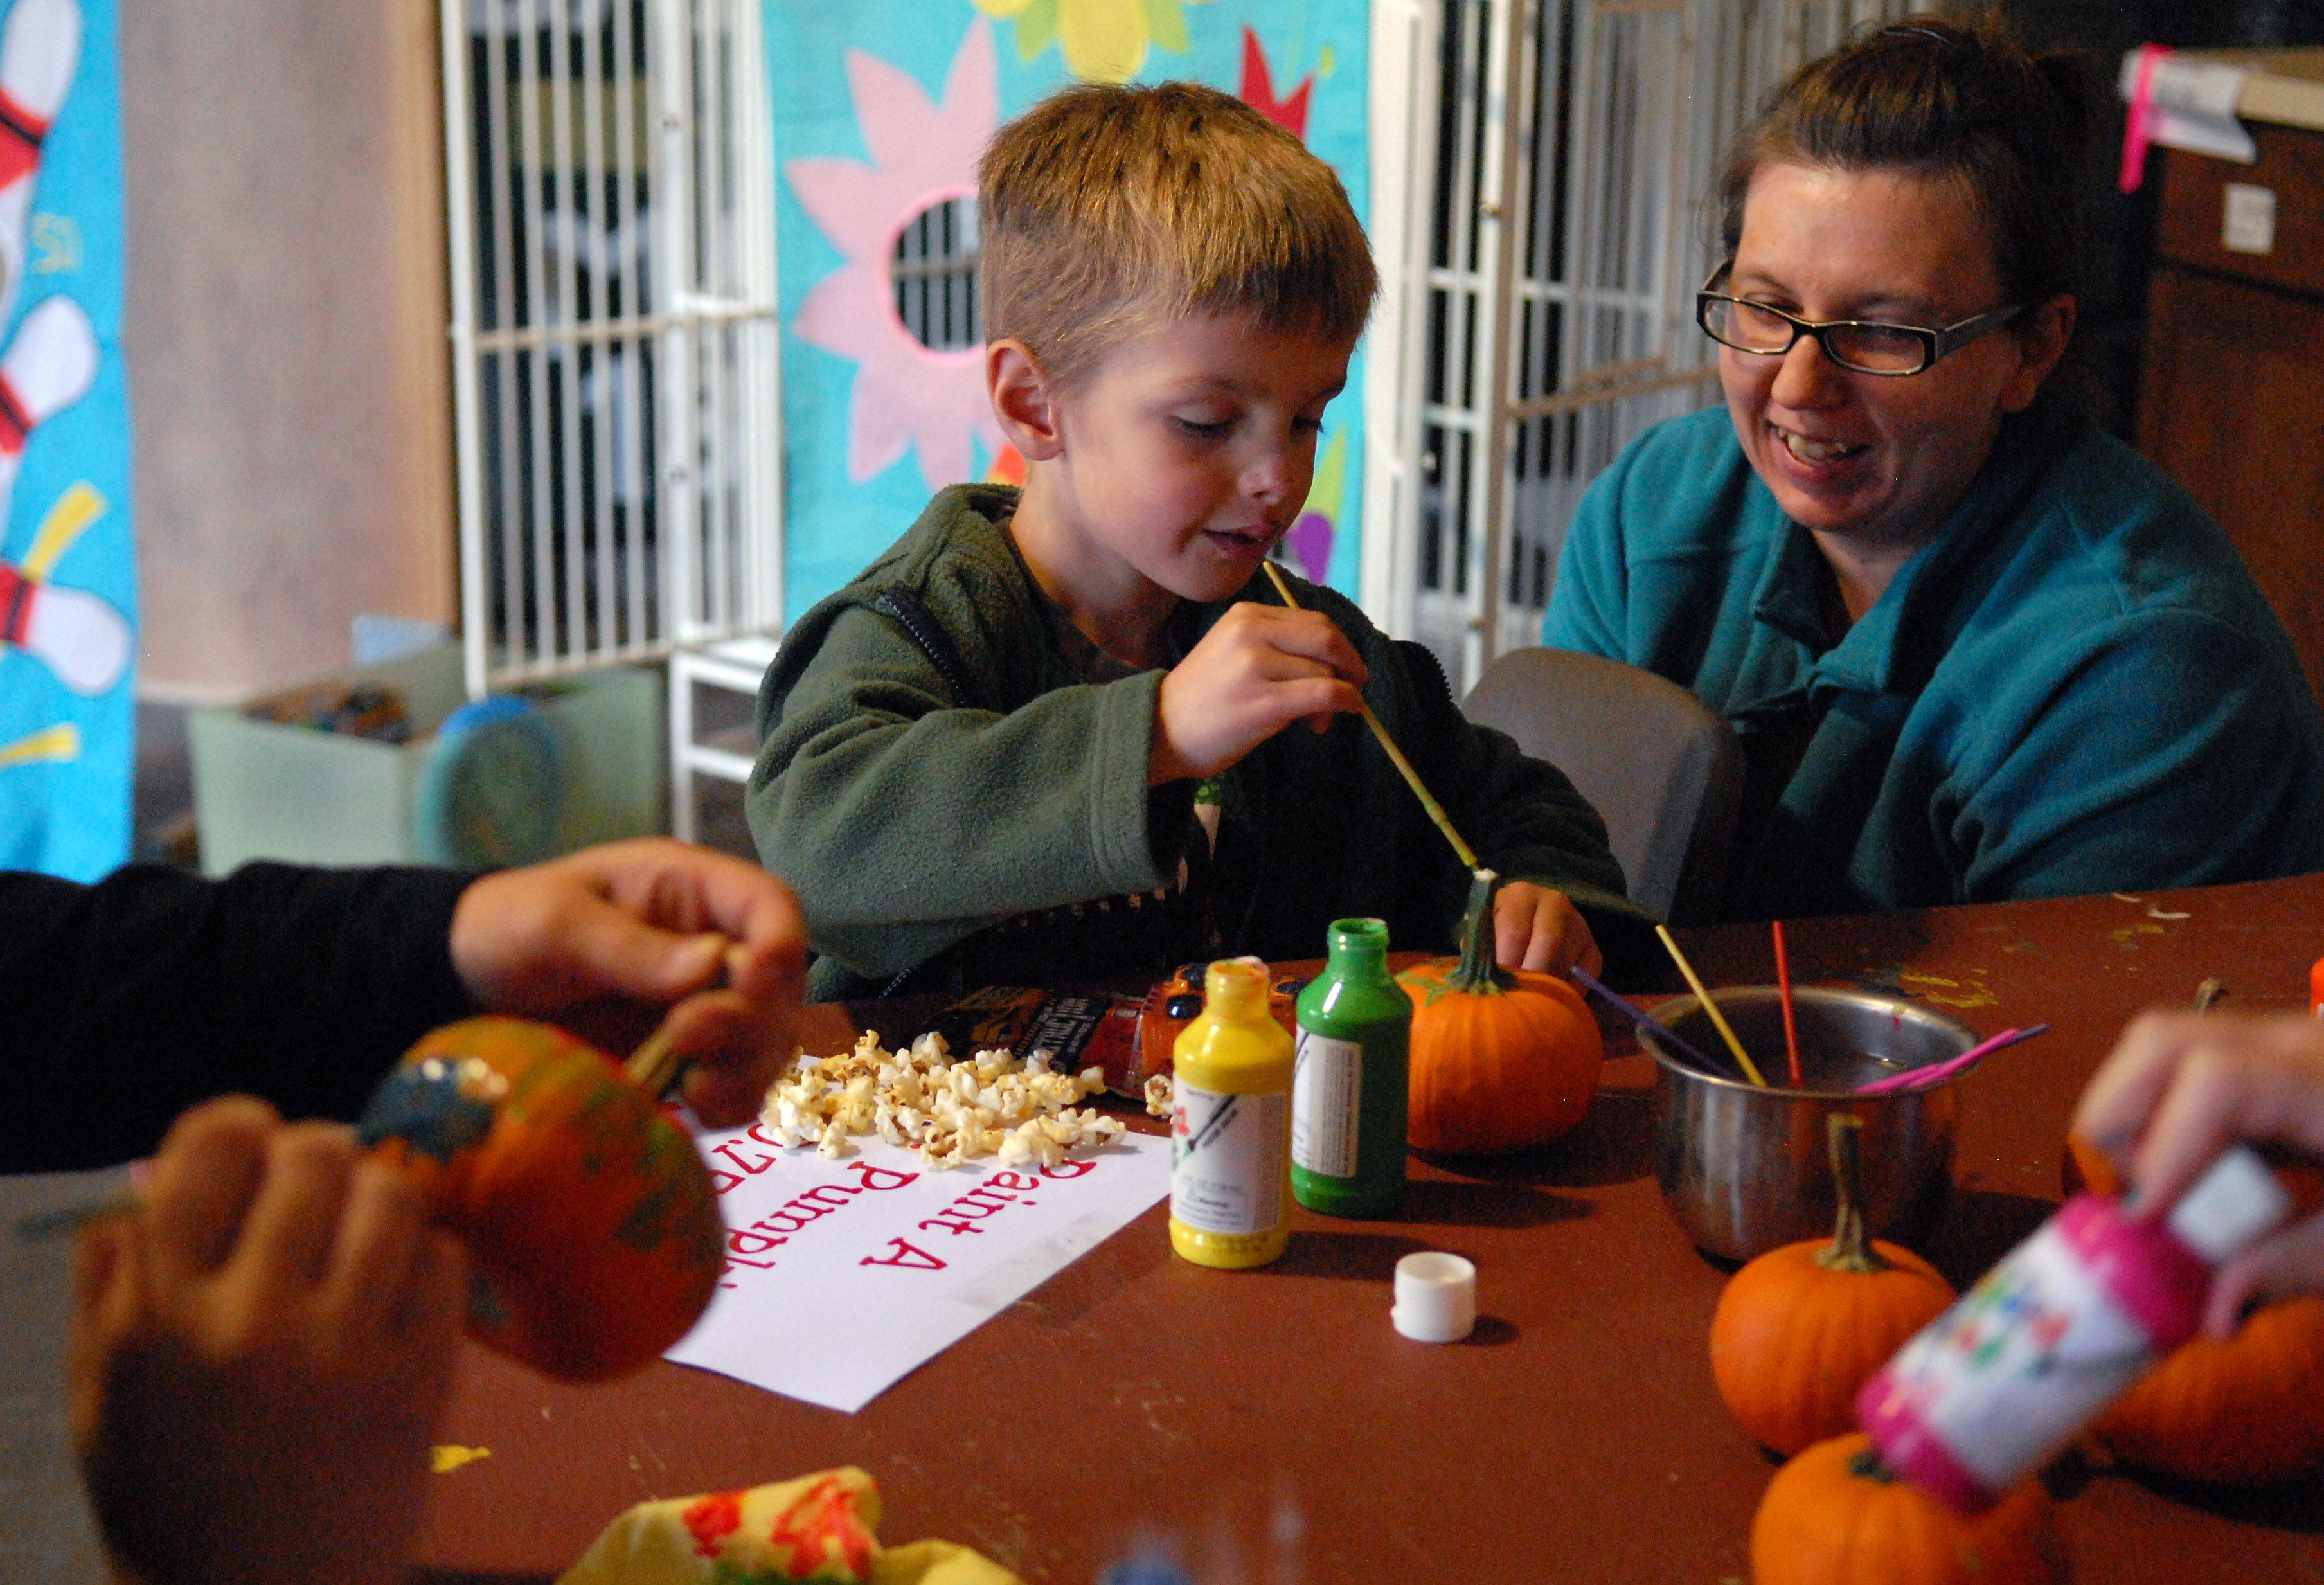 Cameron Worley, 5, of Leland, and Tabatha Ellberg, of Aurora, paint pumpkins during an open house Sunday at the Fox Valley Wildlife Center in Elburn. The open house included a bake sale, games for kids, a pie walk, and education ambassador animals which served as living learning tools.